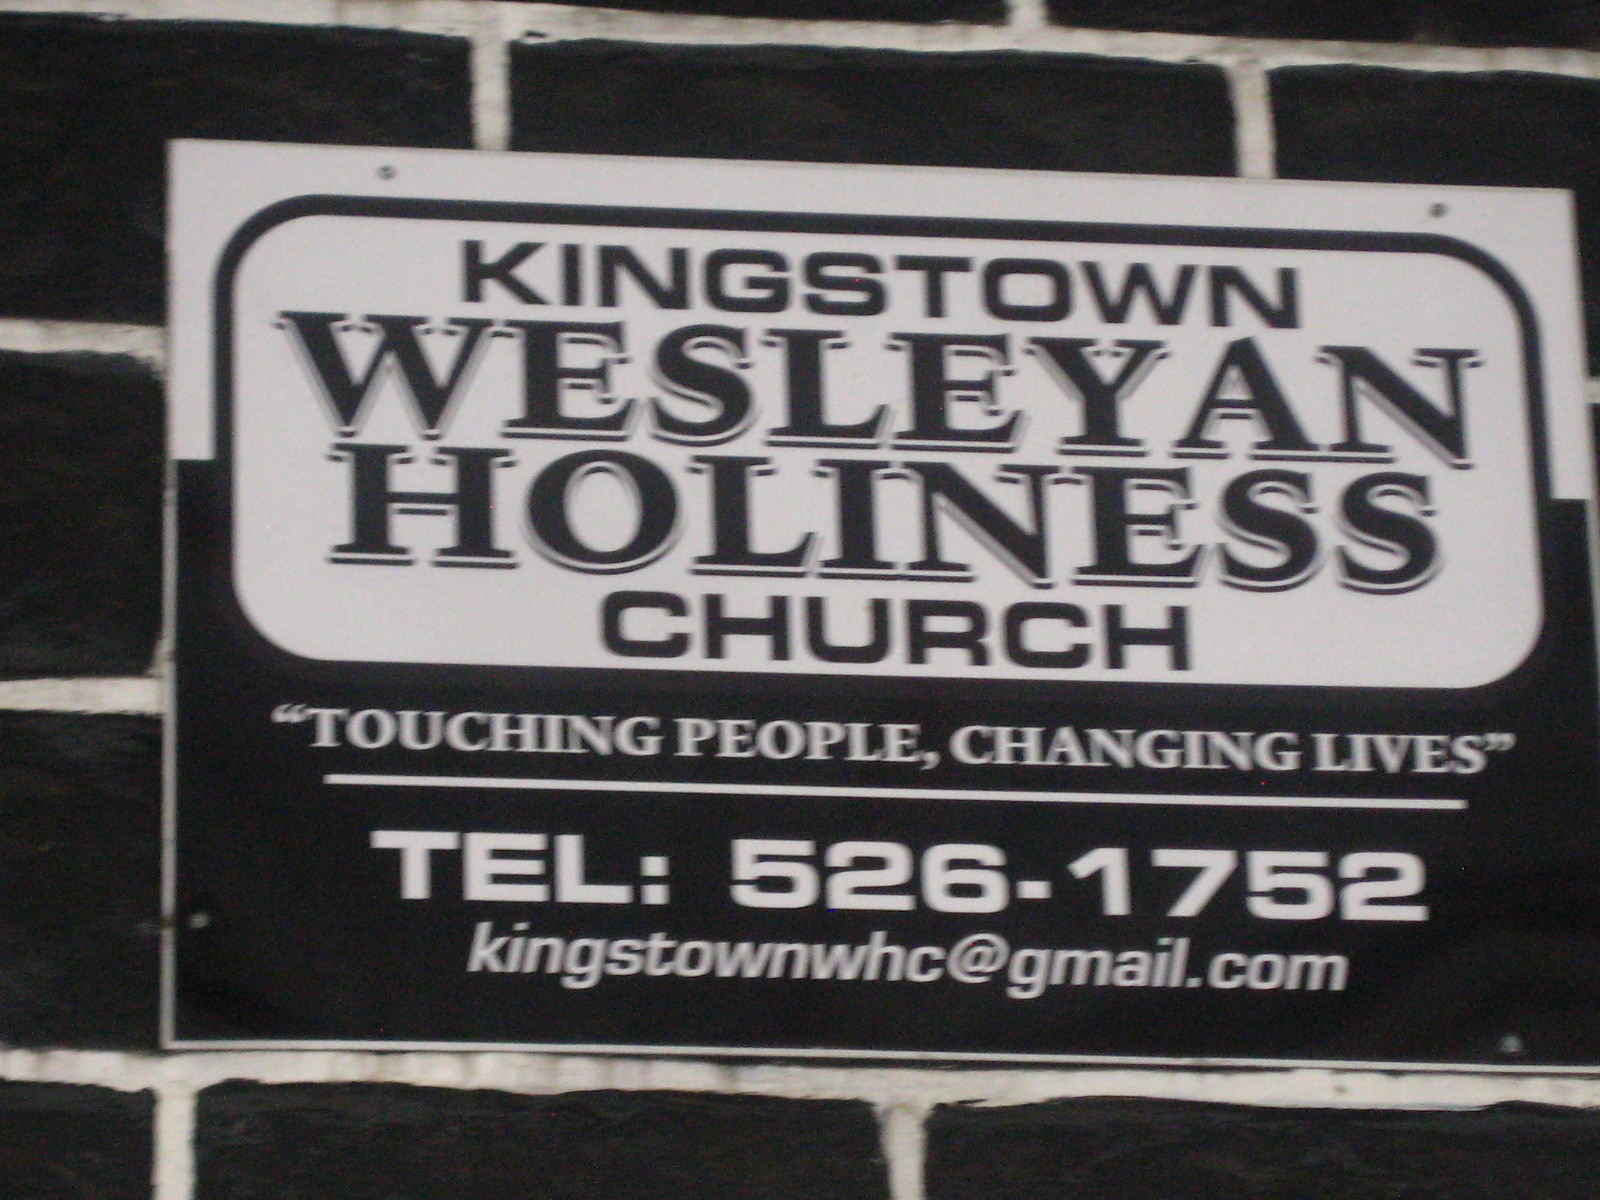 KINGSTON WESLEYAN HOLINESS - Kingston, St. Vincent